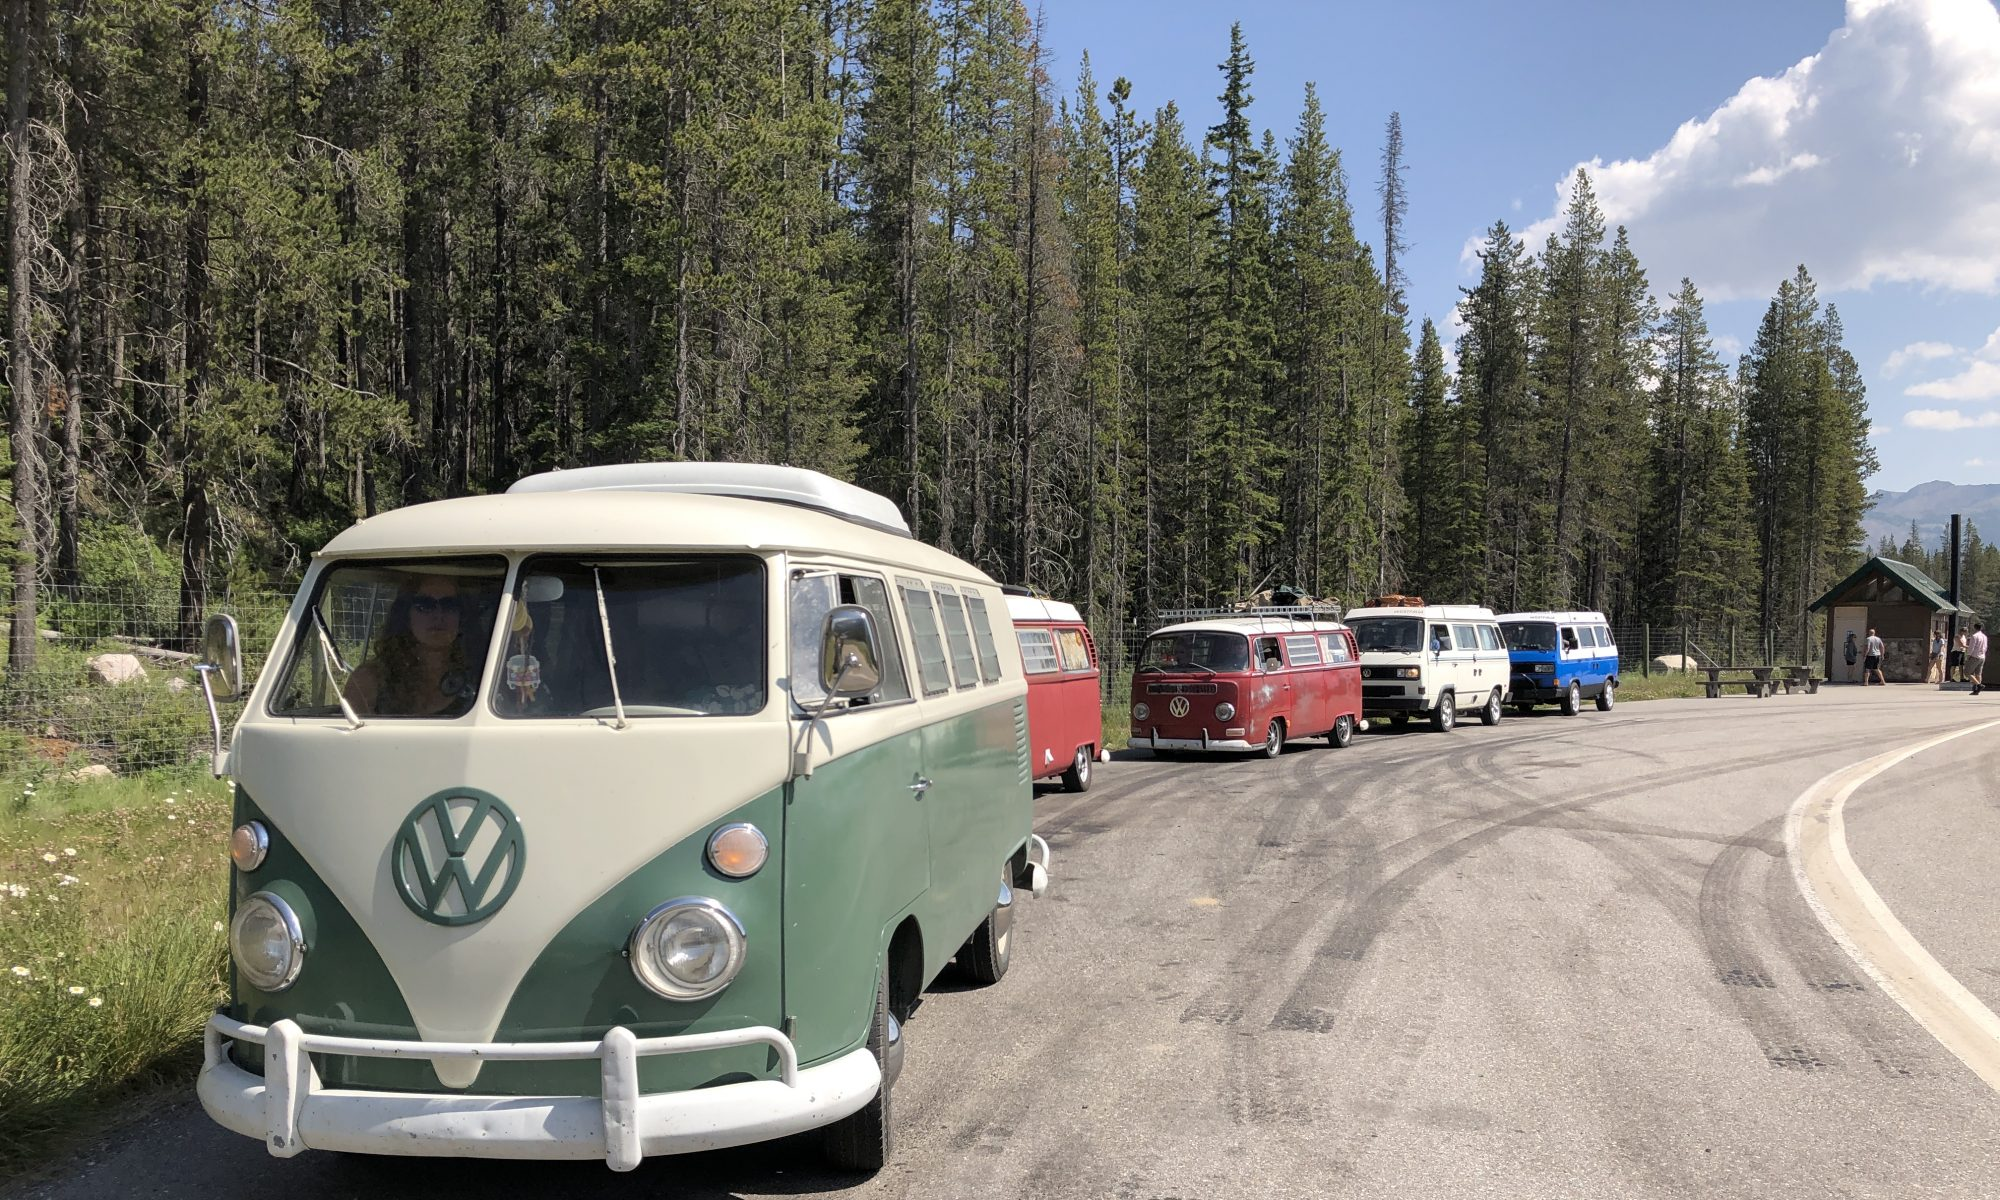 CALLING ALL VW BUSES!